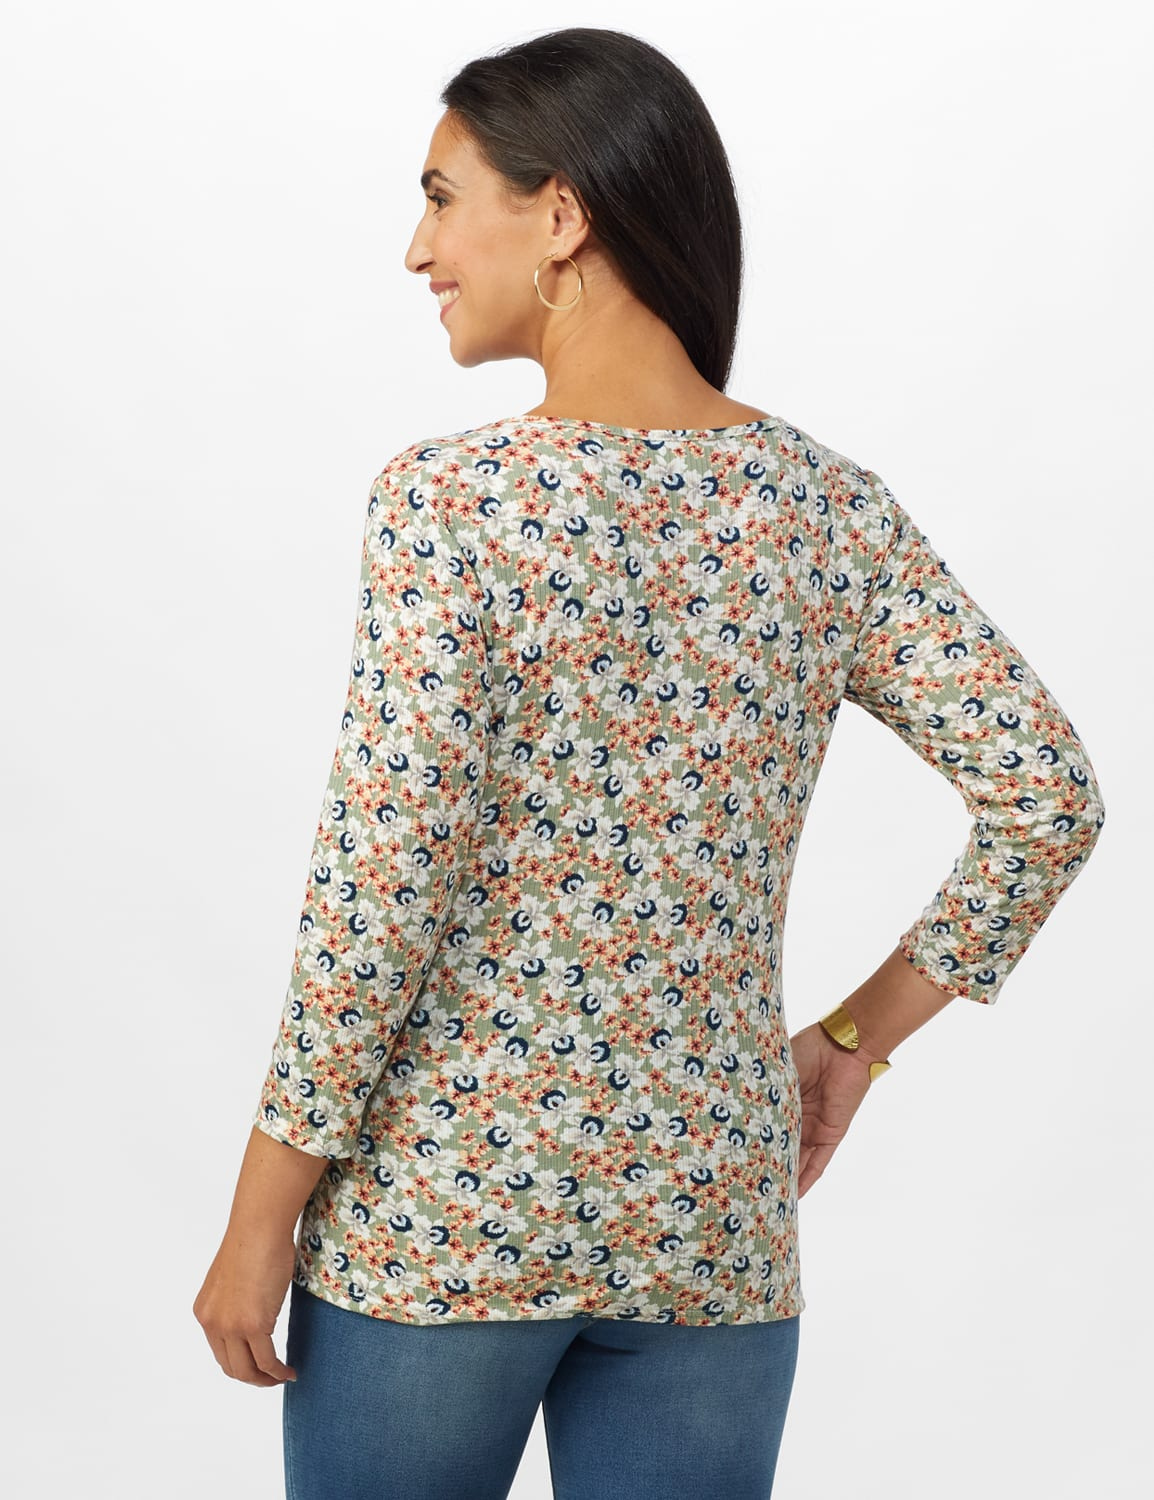 Small Floral Tie Front Knit Top - Sage/Peach - Back